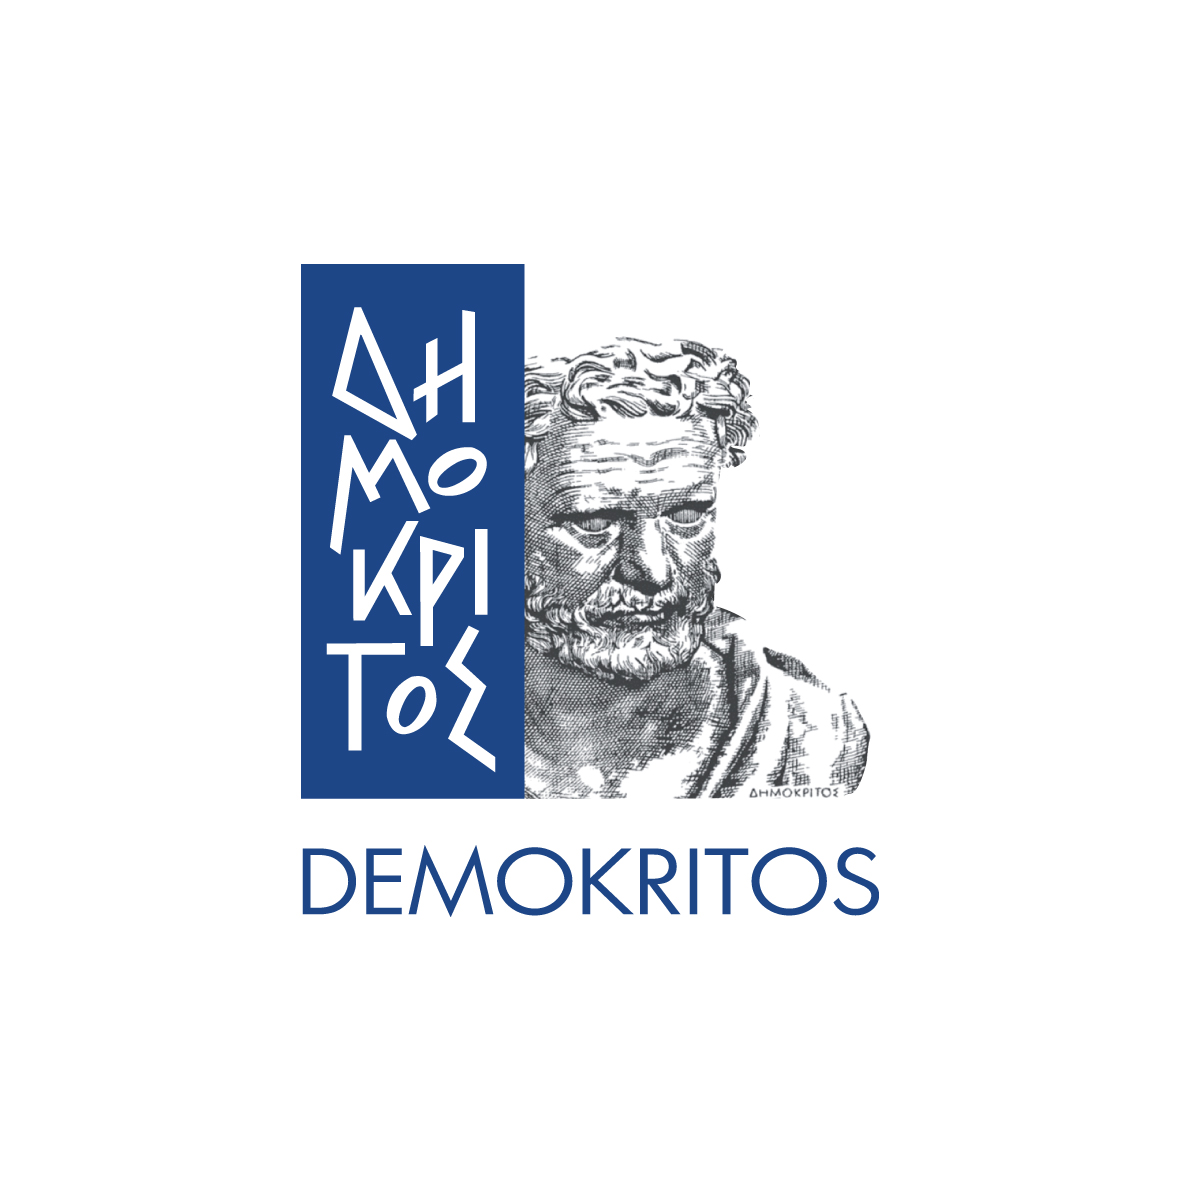 logo demokritos diafano blue